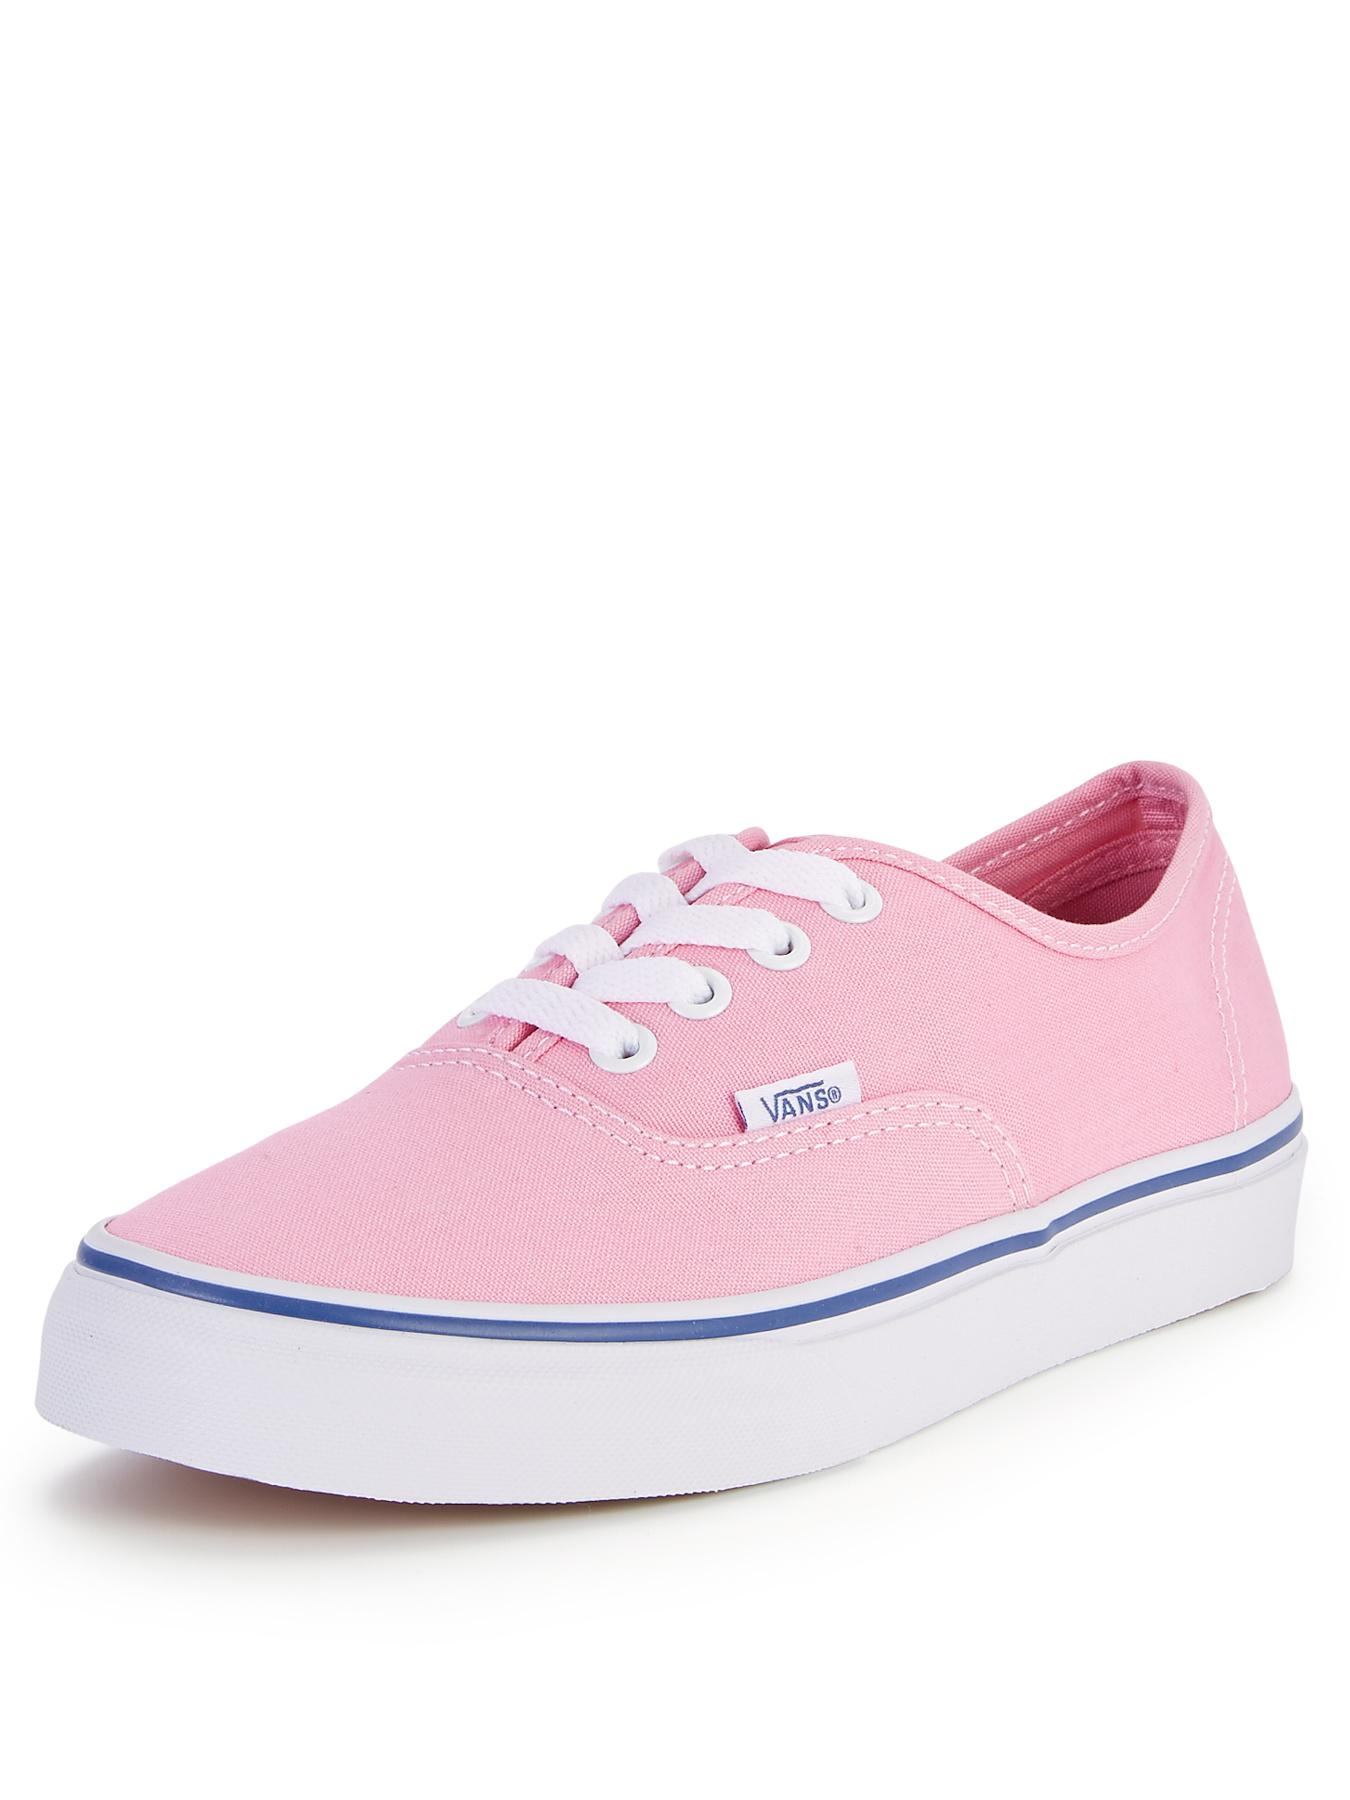 Vans Authentic Plimsolls - Pink, Pink